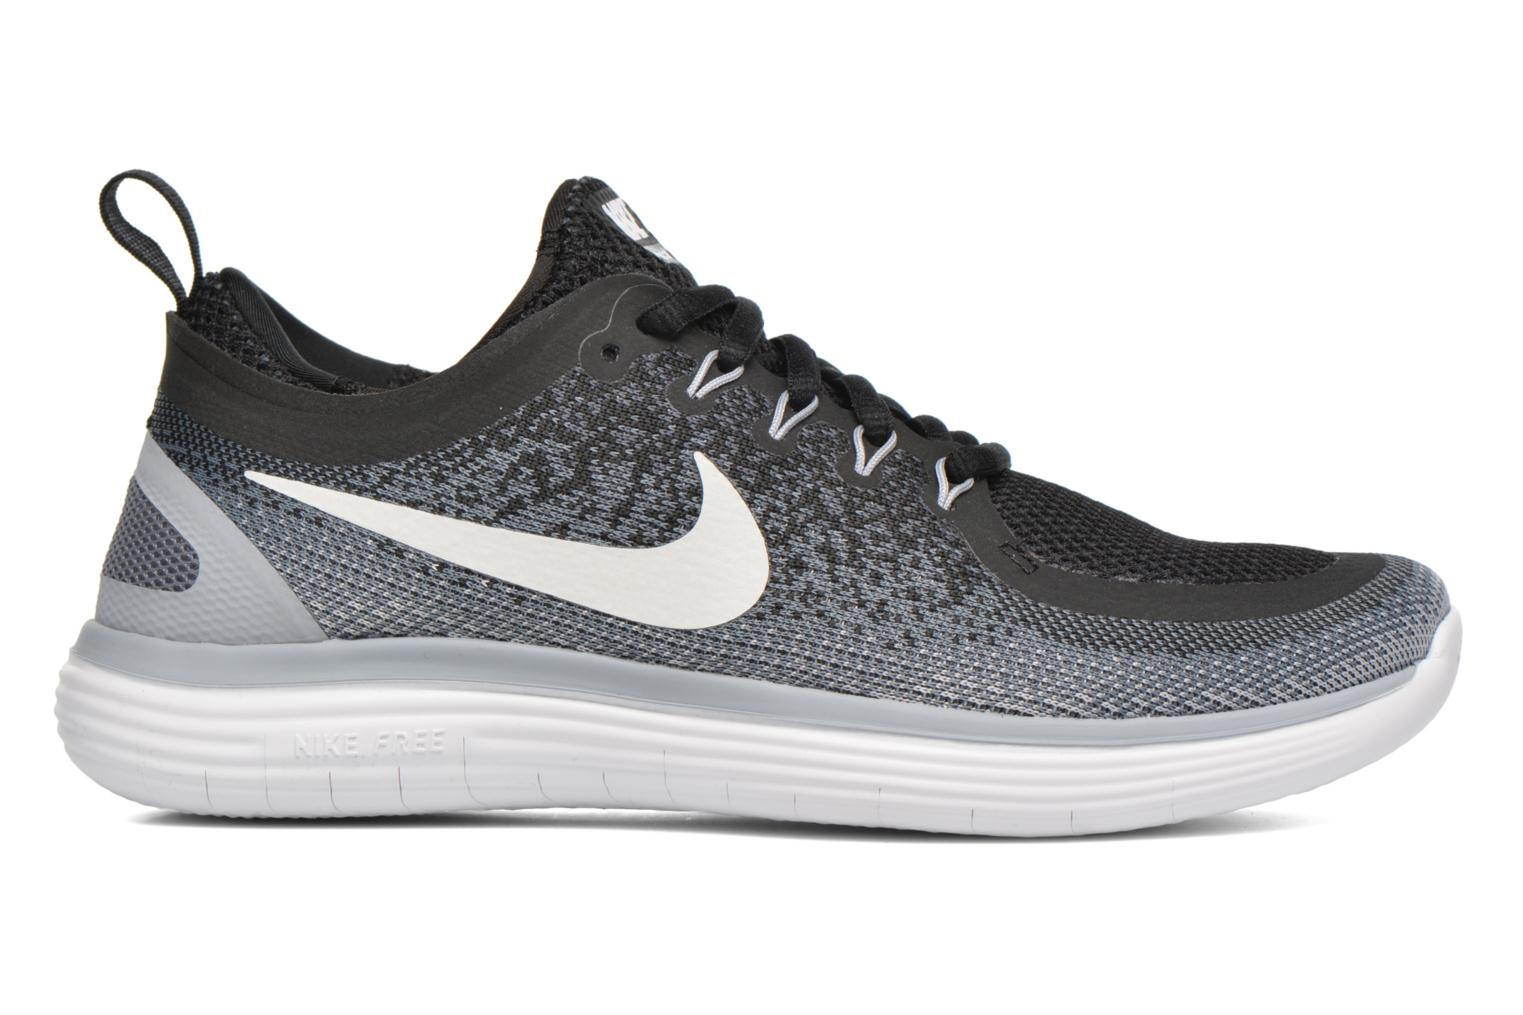 Wmns Nike Free Rn Distance 2 Black/White-Cool Grey-Dark Grey